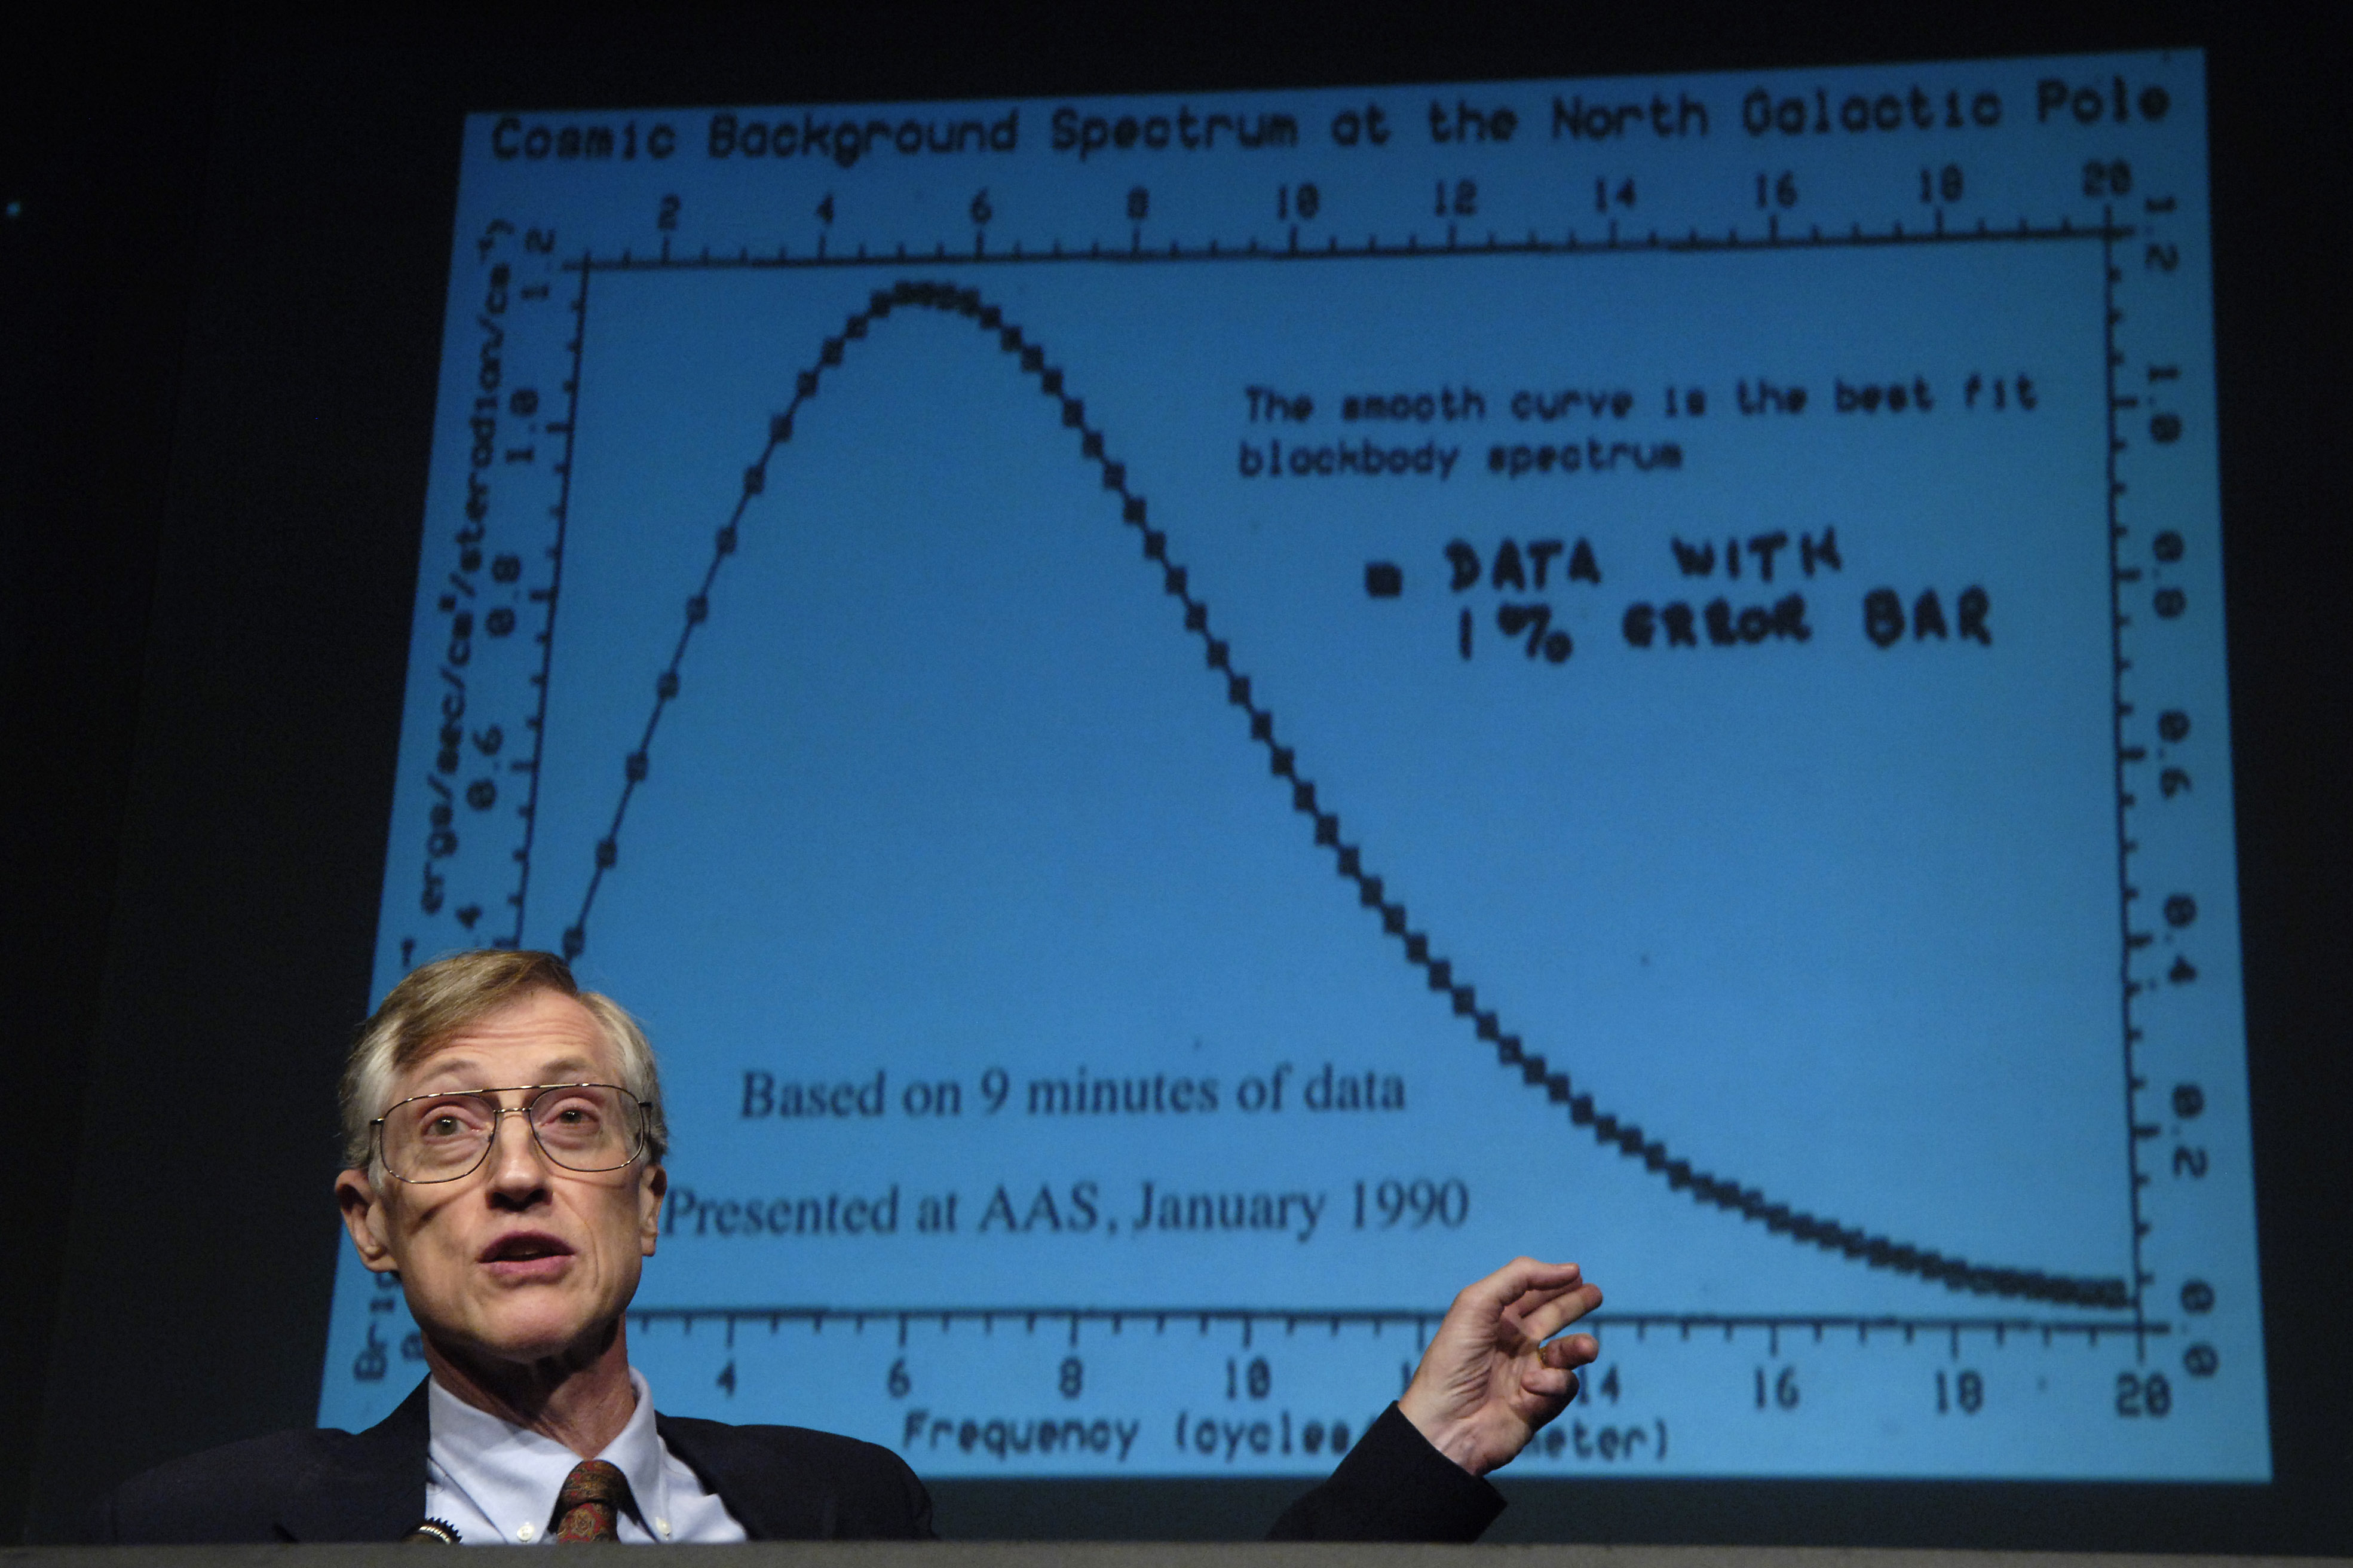 NASA scientist Dr. John C. Mather shows some of the earliest data from the NASA Cosmic Background Explorer (COBE) spacecraft during a press conference held on Oct. 6, 2006, at NASA Headquarters in Washington, DC. Dr. Mather shares the 2006 Nobel Prize for Physics with George F. Smoot of the University of California for their collaborative work on understanding the Big Bang.